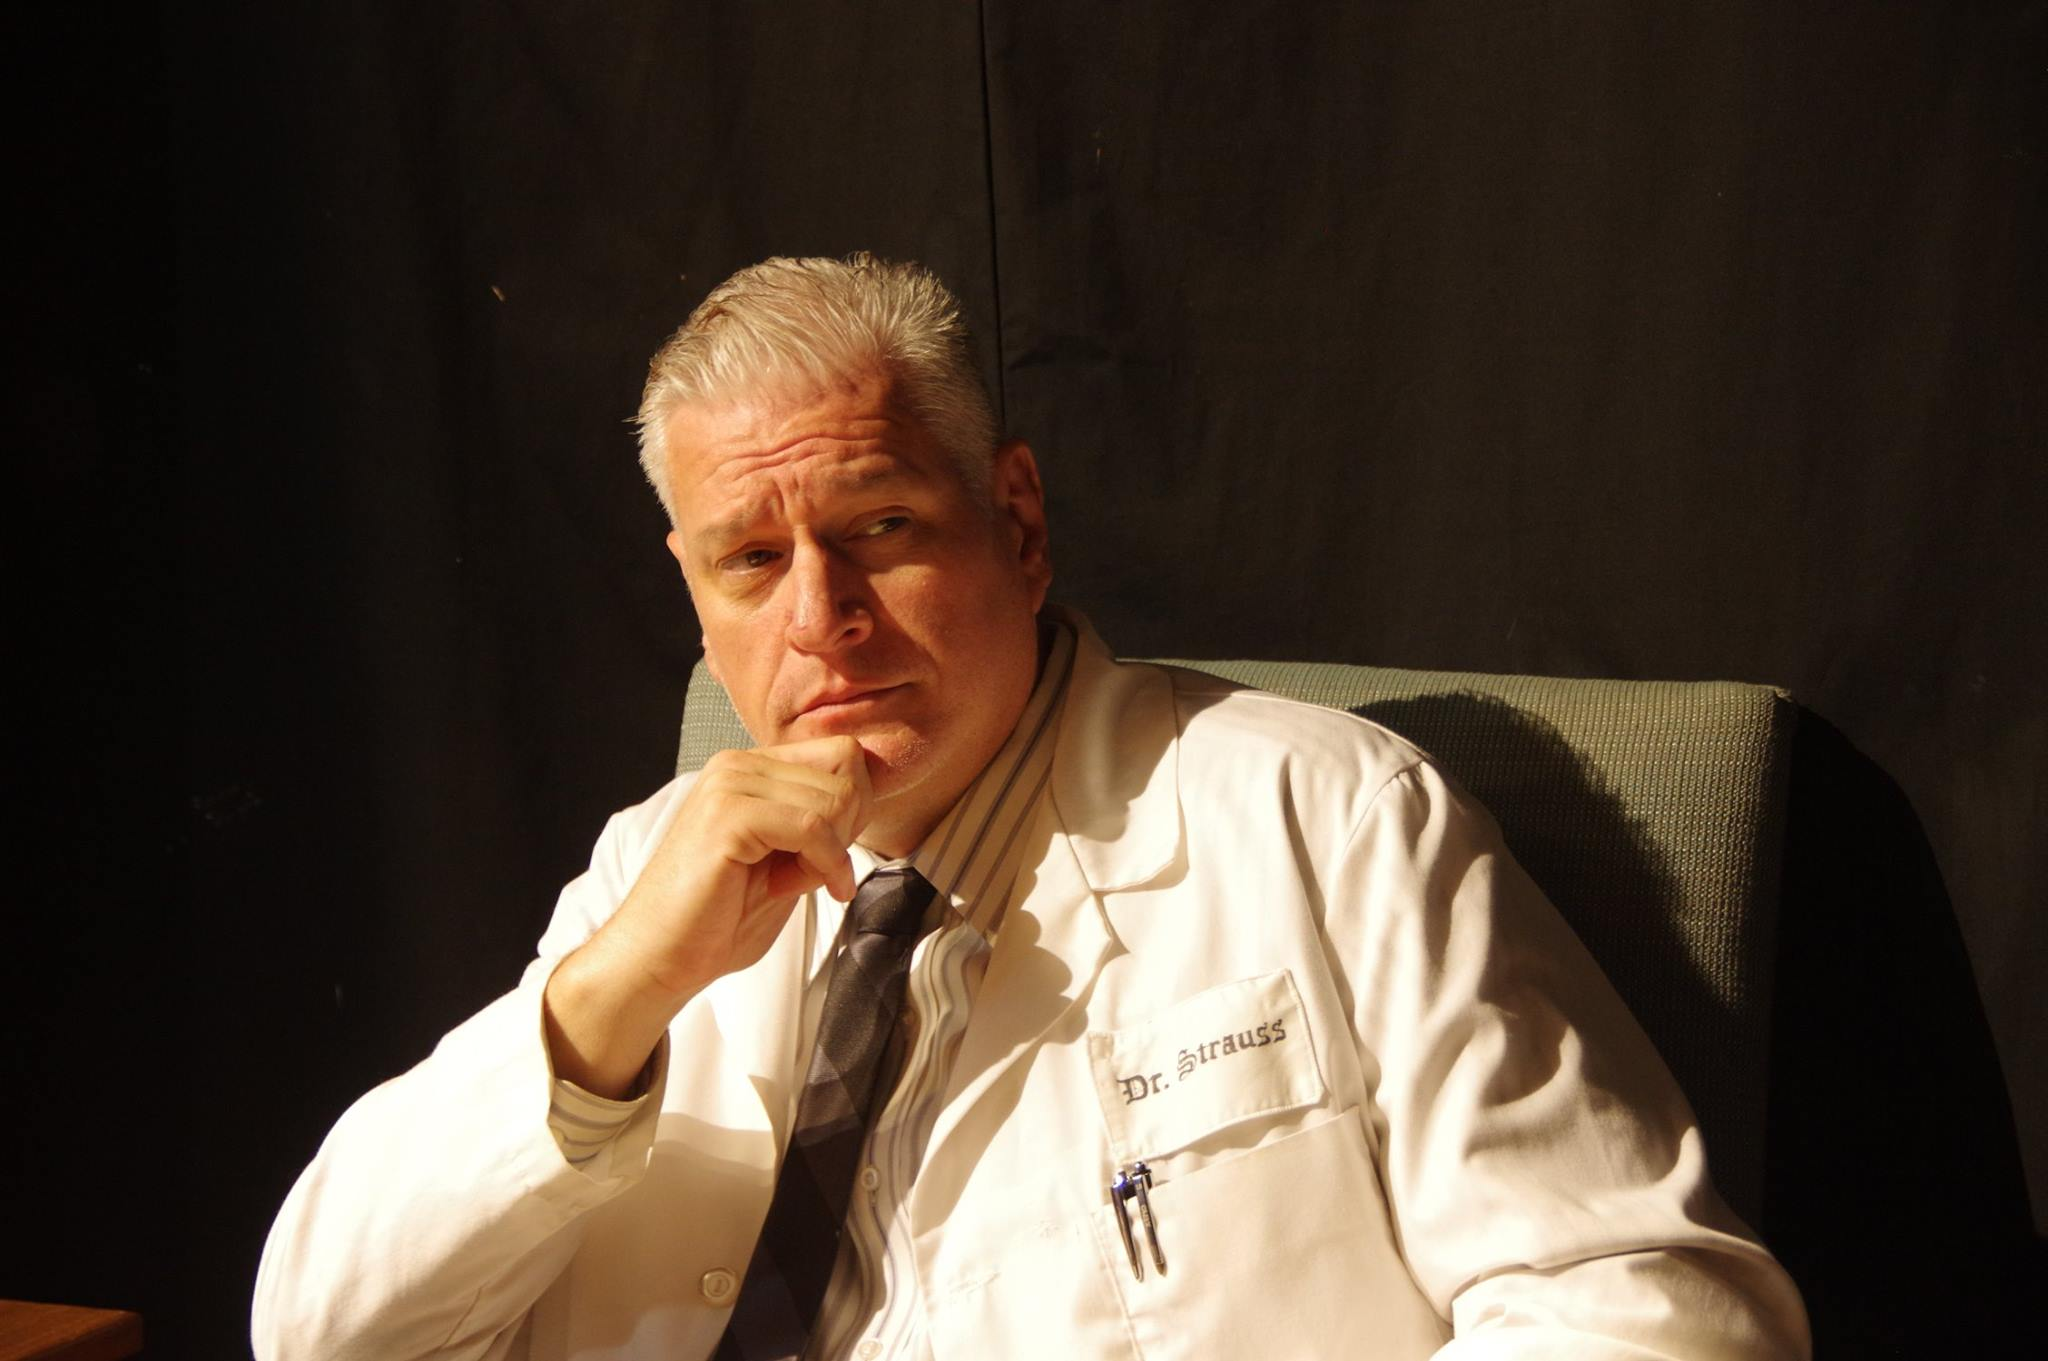 Lance Smith as Dr. Strauss